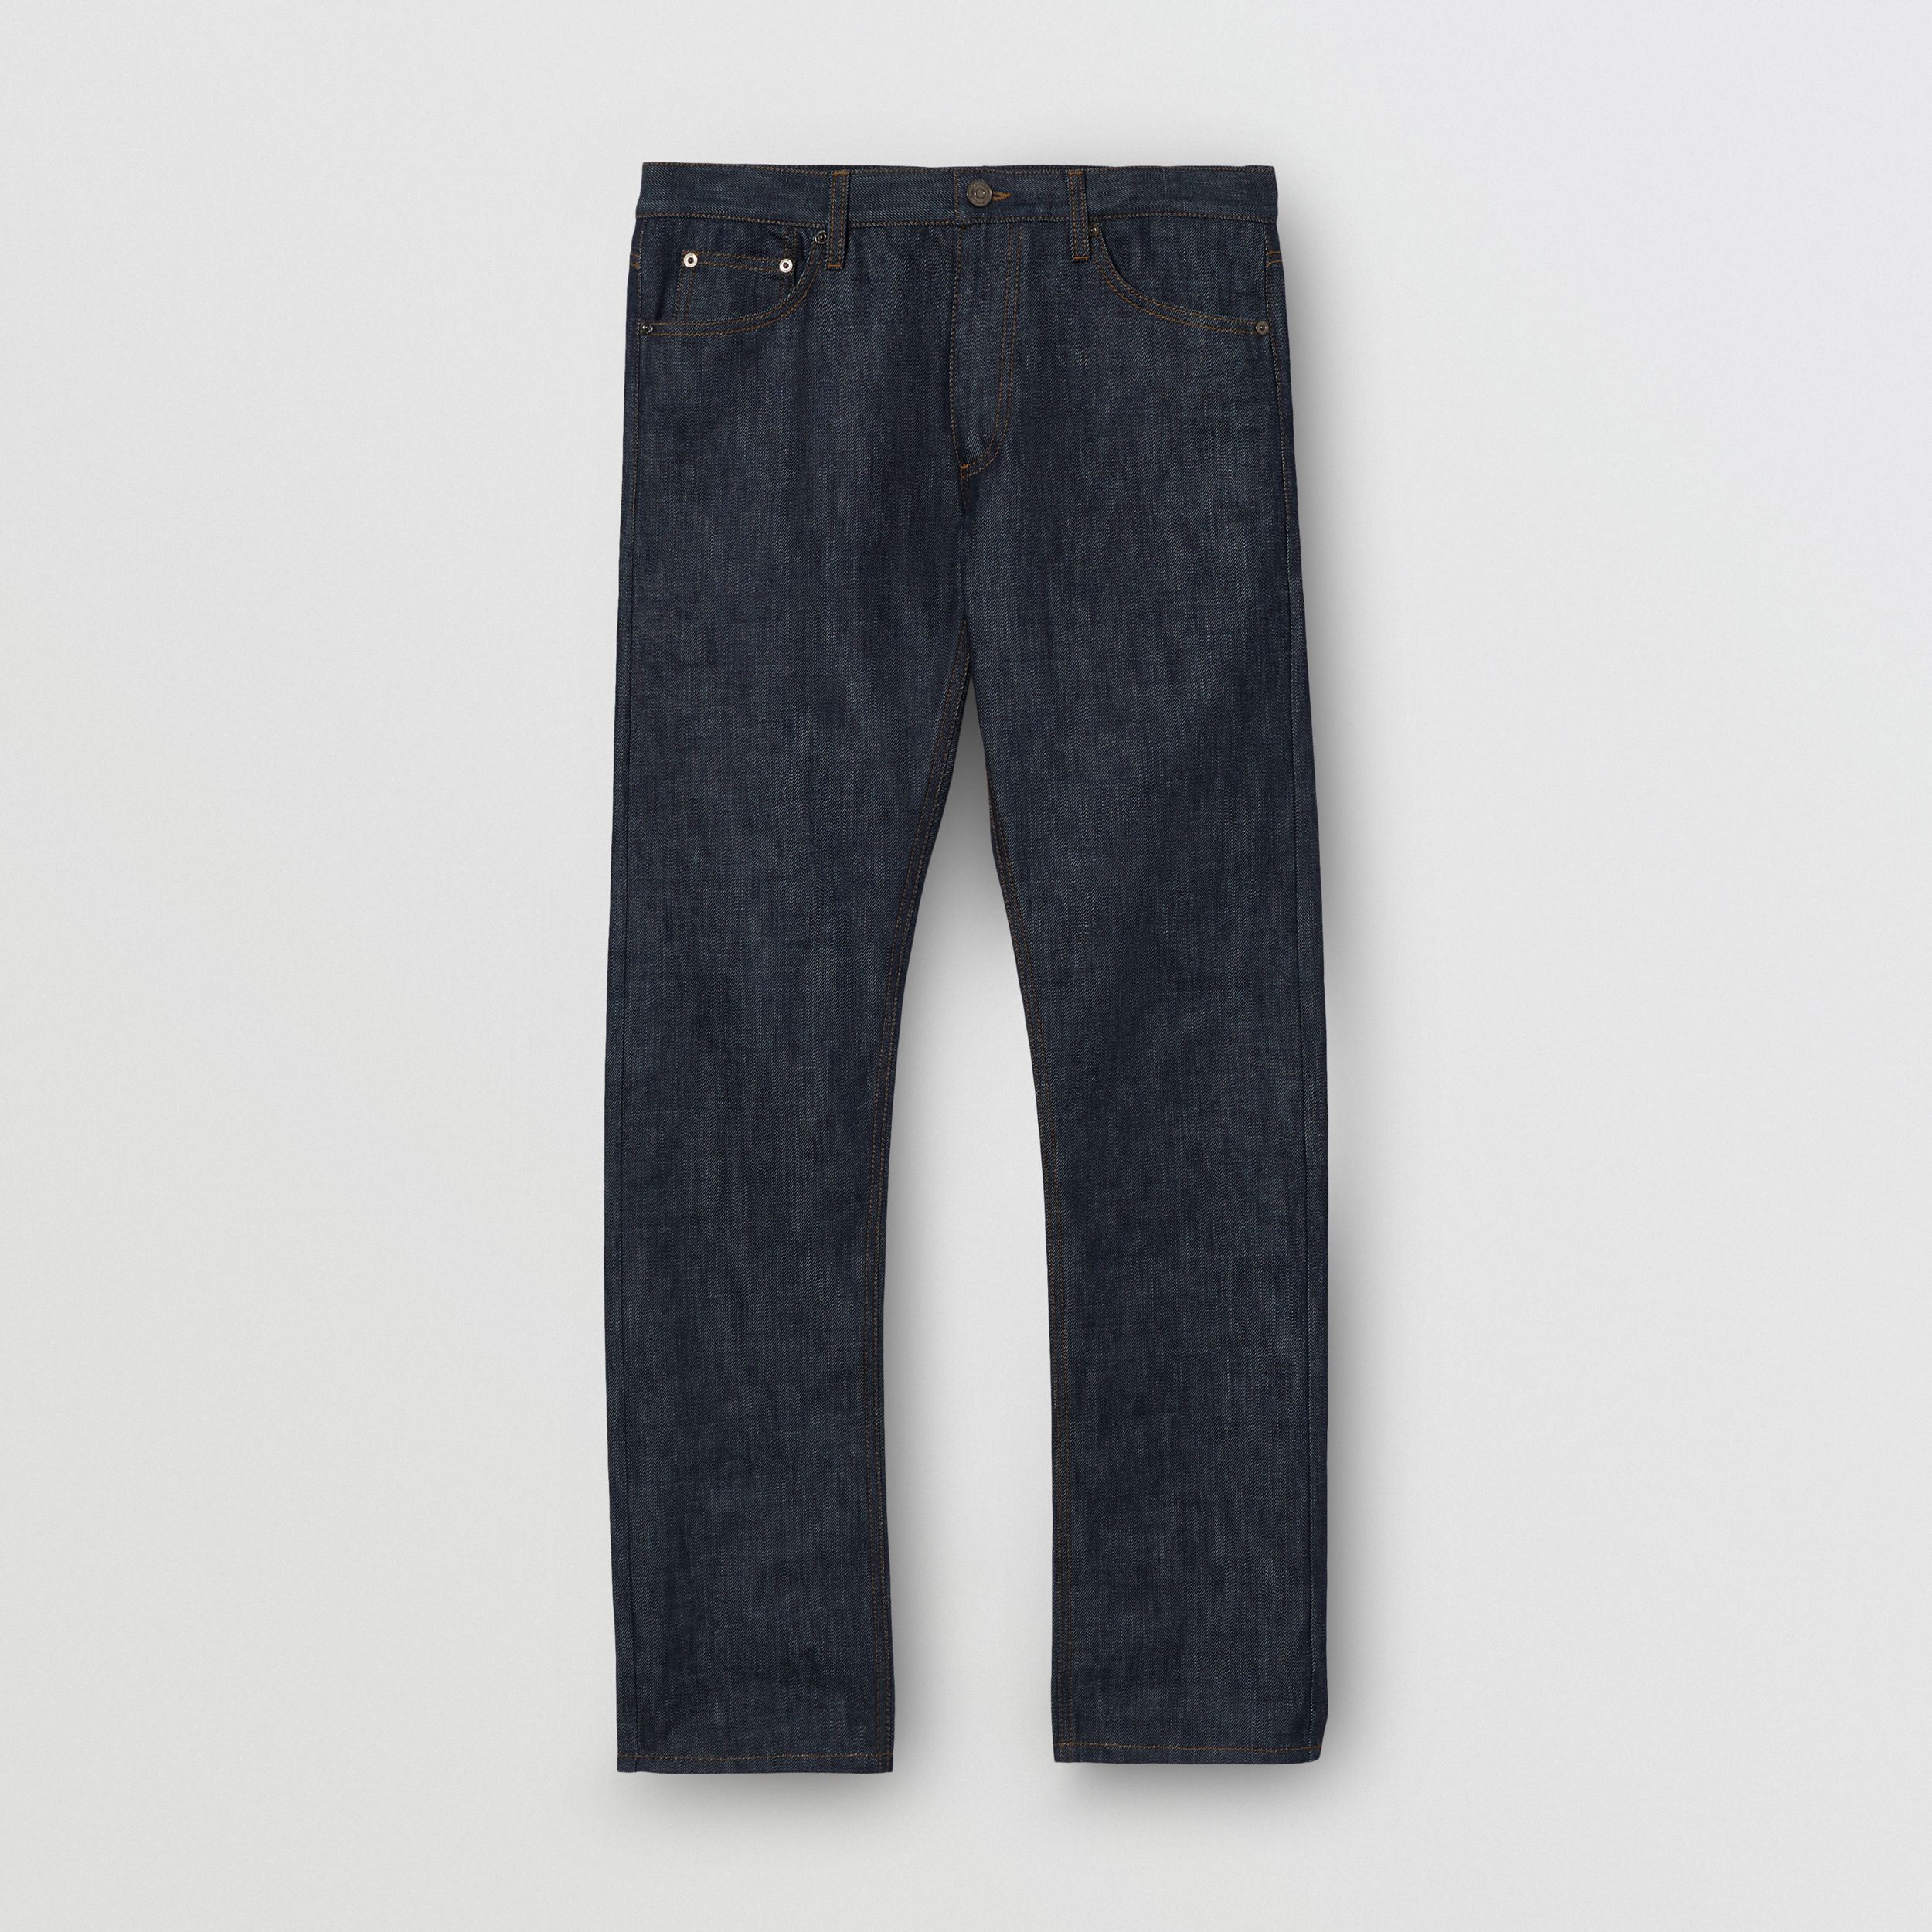 Straight Fit Japanese Selvedge Denim Jeans in Mid Indigo Blue | Burberry - 4